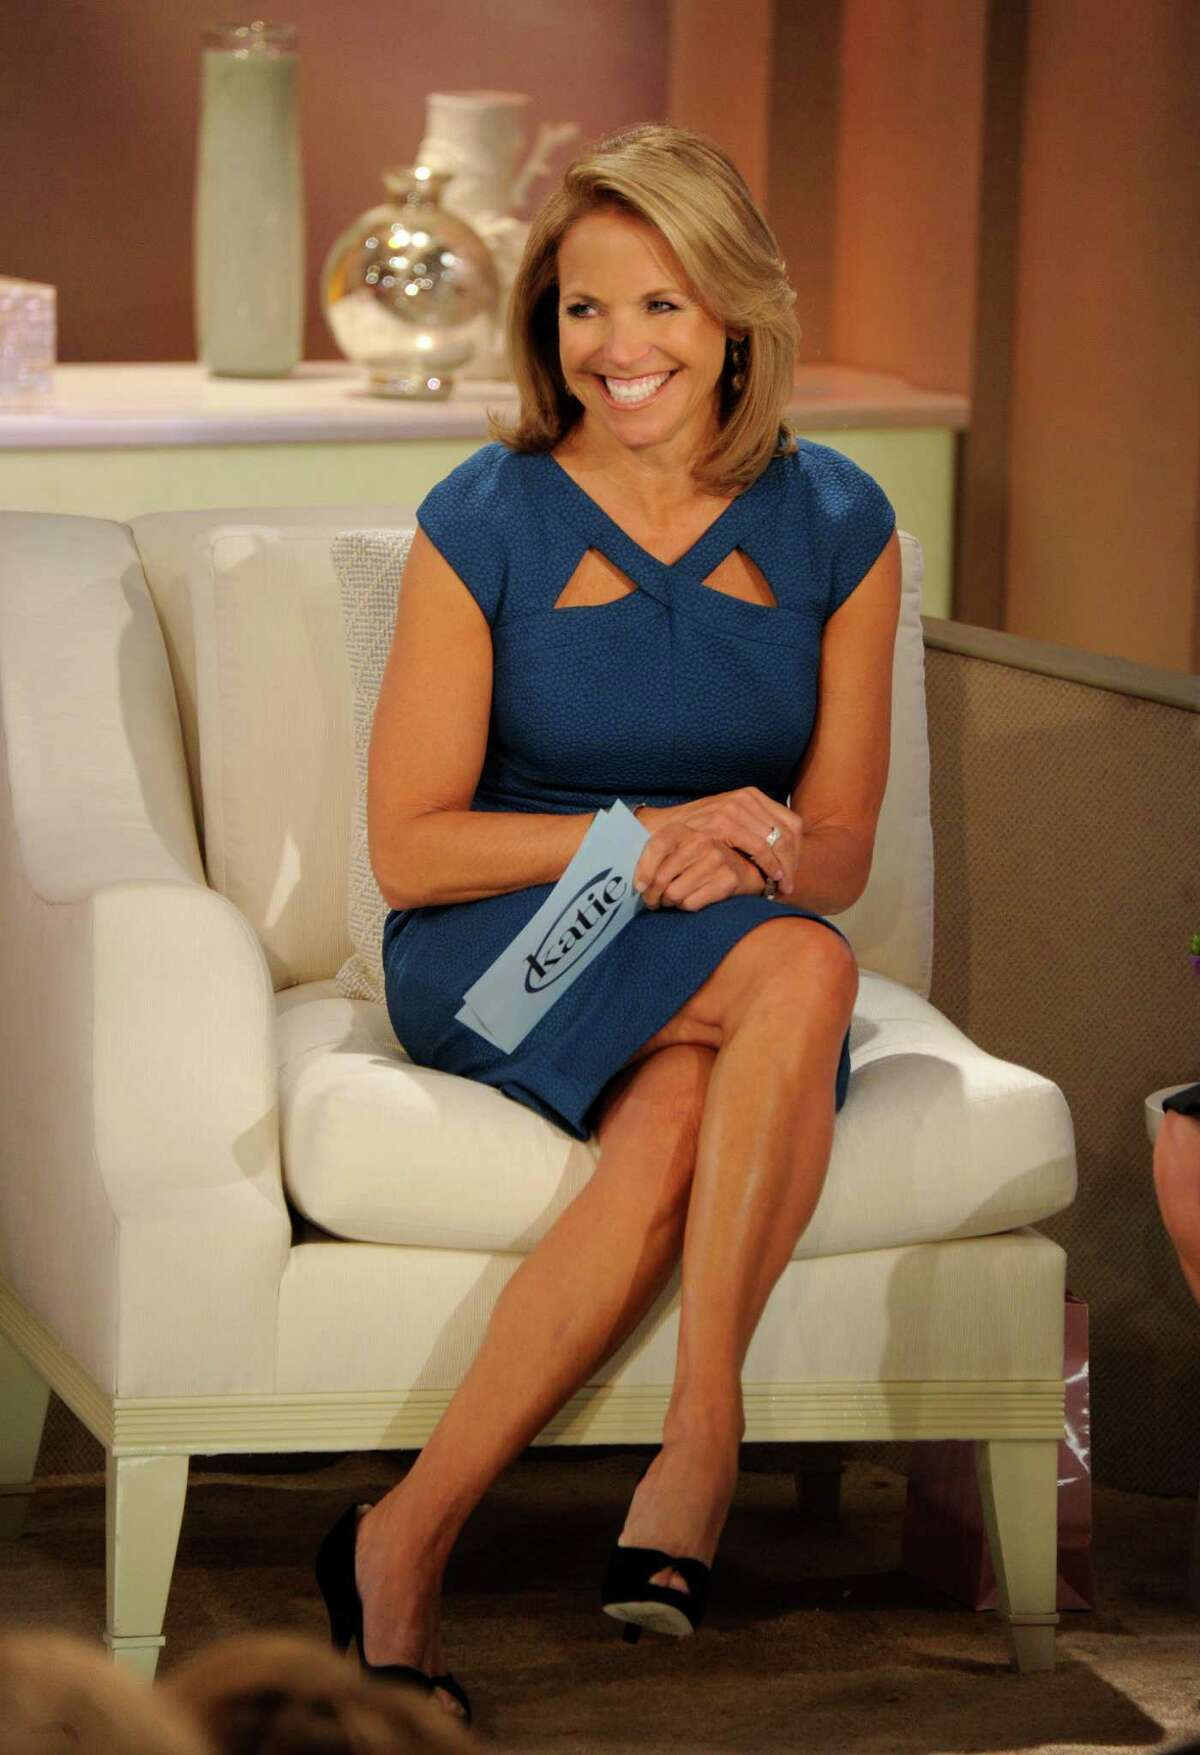 """This image released by ABC shows host Katie Couric making her debut appearance for her syndicated talk show """"Katie,"""" Monday, Sept. 10, 2012 in New York. (AP Photo/Disney-ABC Domestic Television, Ida Mae Astute)"""